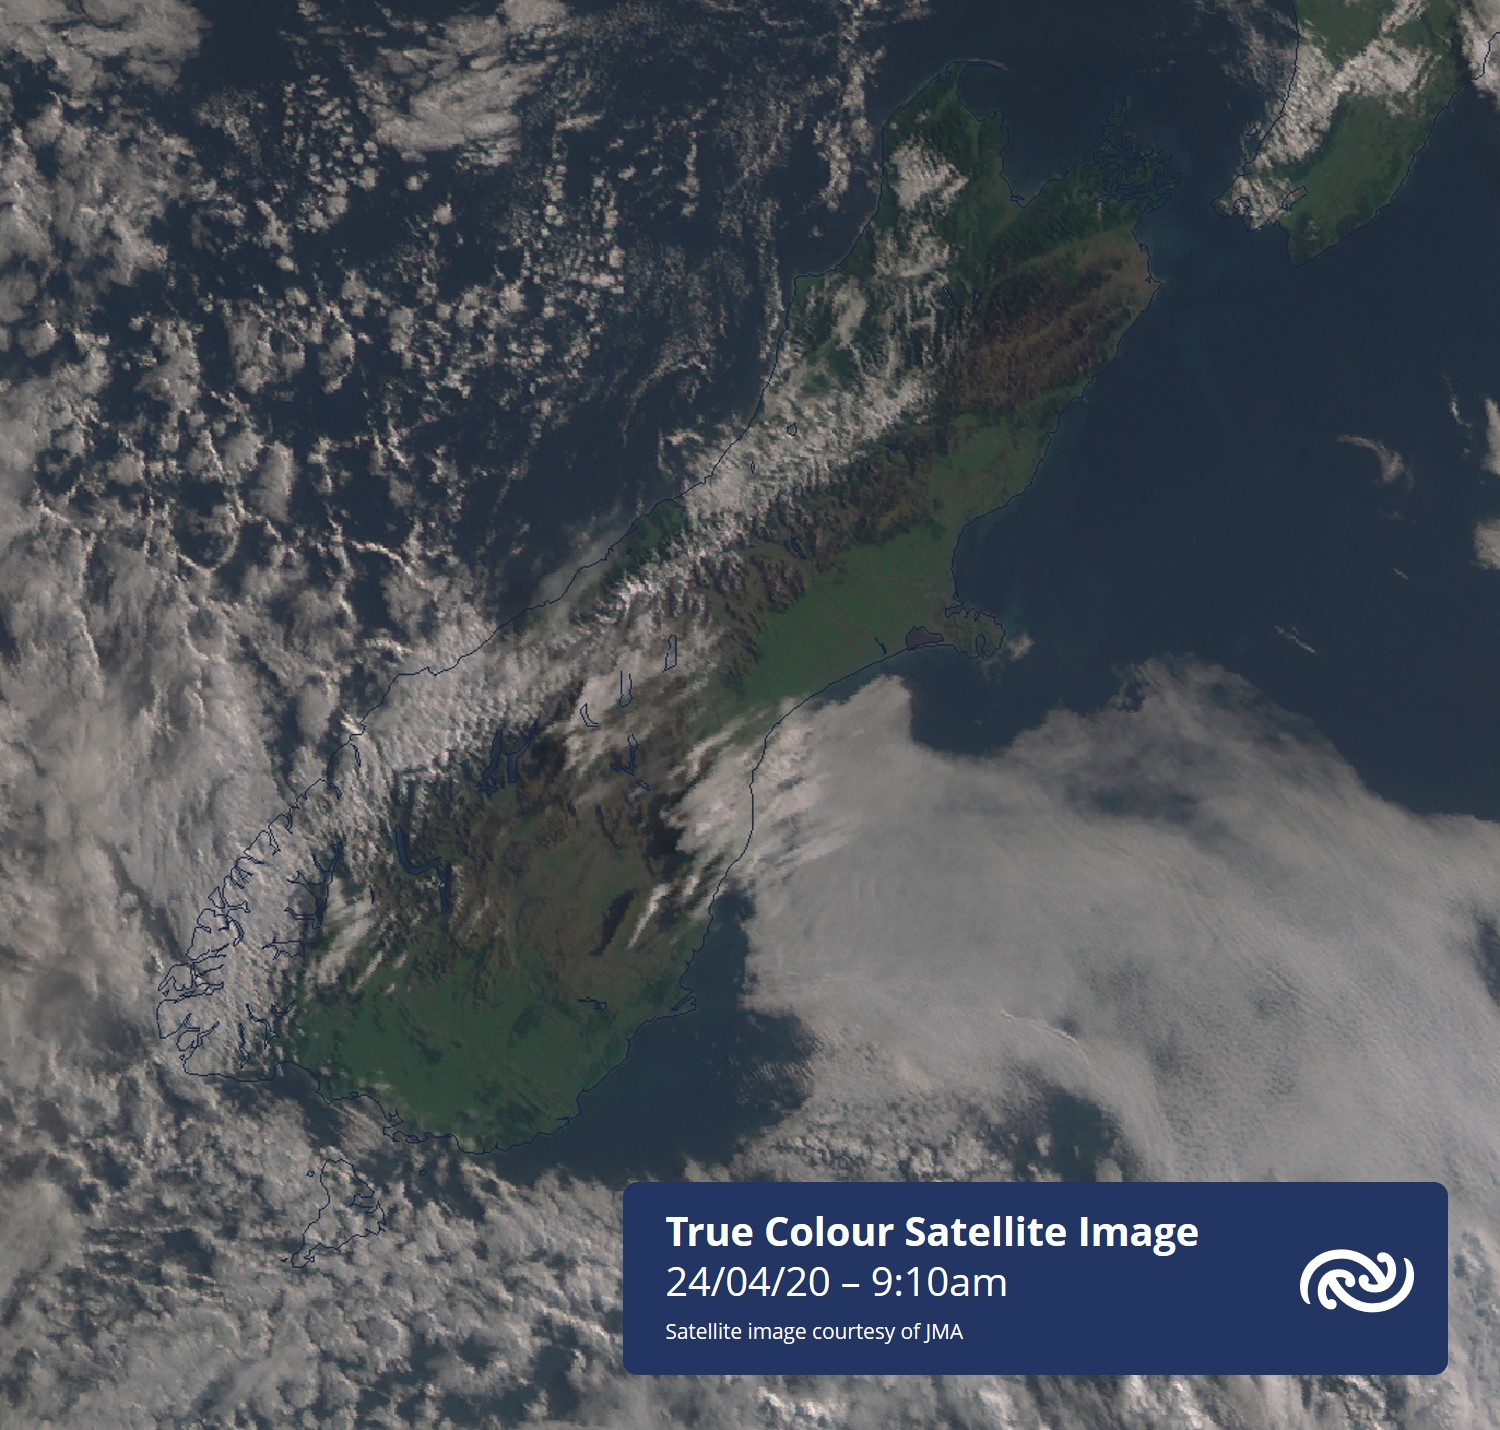 Largely glorious day across the South Island. A bit of mid-high cloud over North Otago (you can see the shadows), and some flat looking low stratus offshore Canterbury. West Coast will see the odd light shower interrupting blue skies. metservice.com for details ^RK https://t.co/gJriLEQfAp